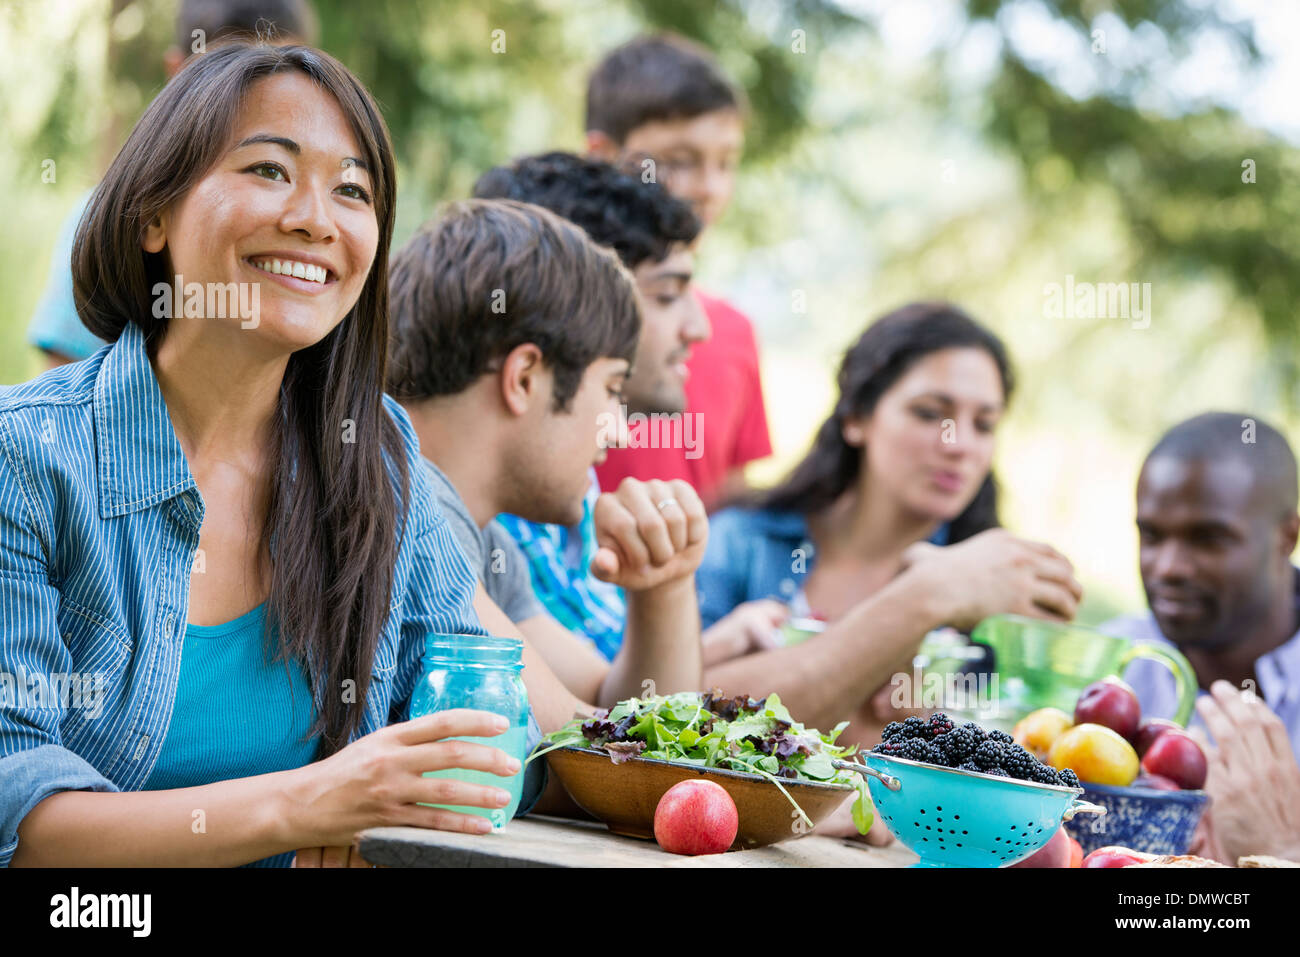 Adults and children around a table at a party in a garden. - Stock Image